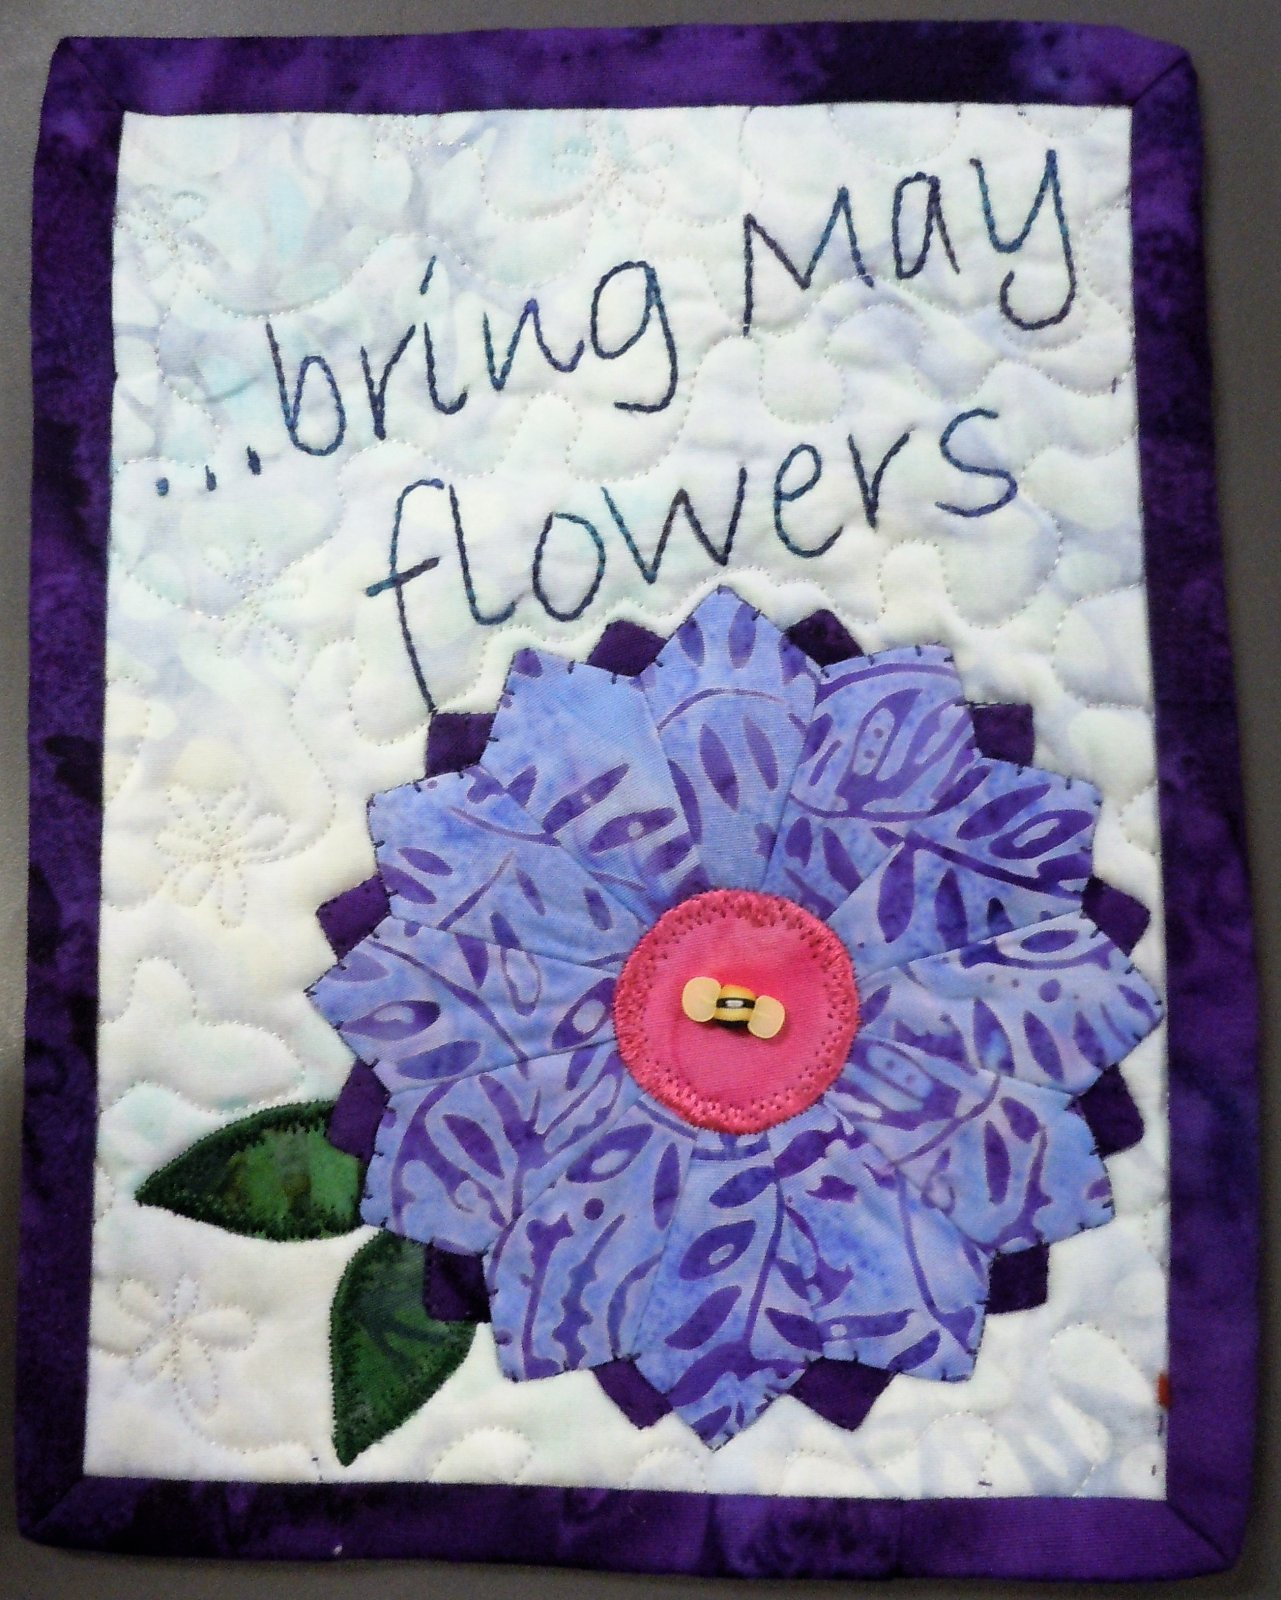 Kit-Tiny Dresden May Brings Flowers 6W x 8H